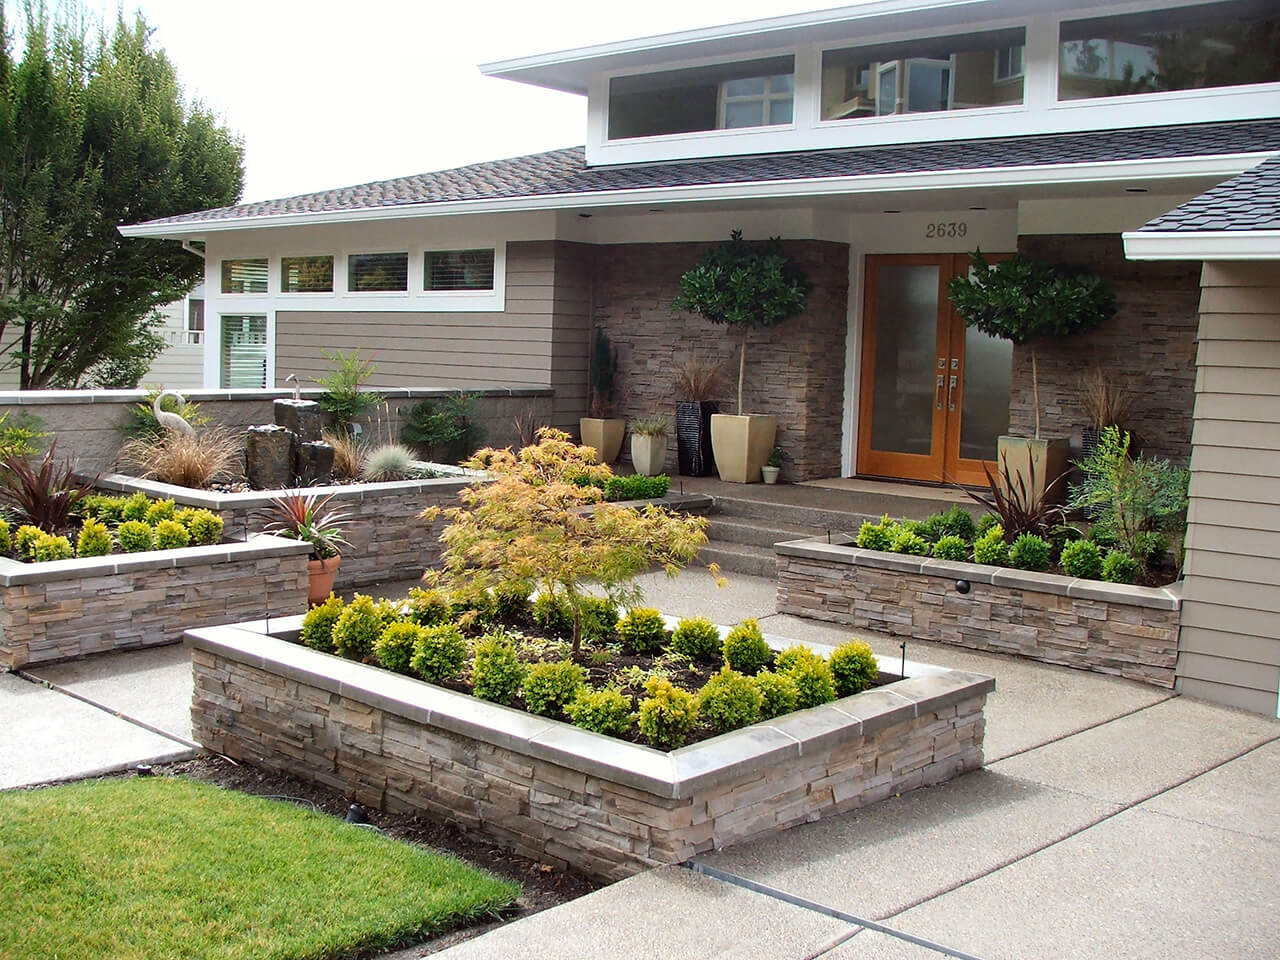 20 brilliant front garden landscaping ideas style motivation for Front yard garden